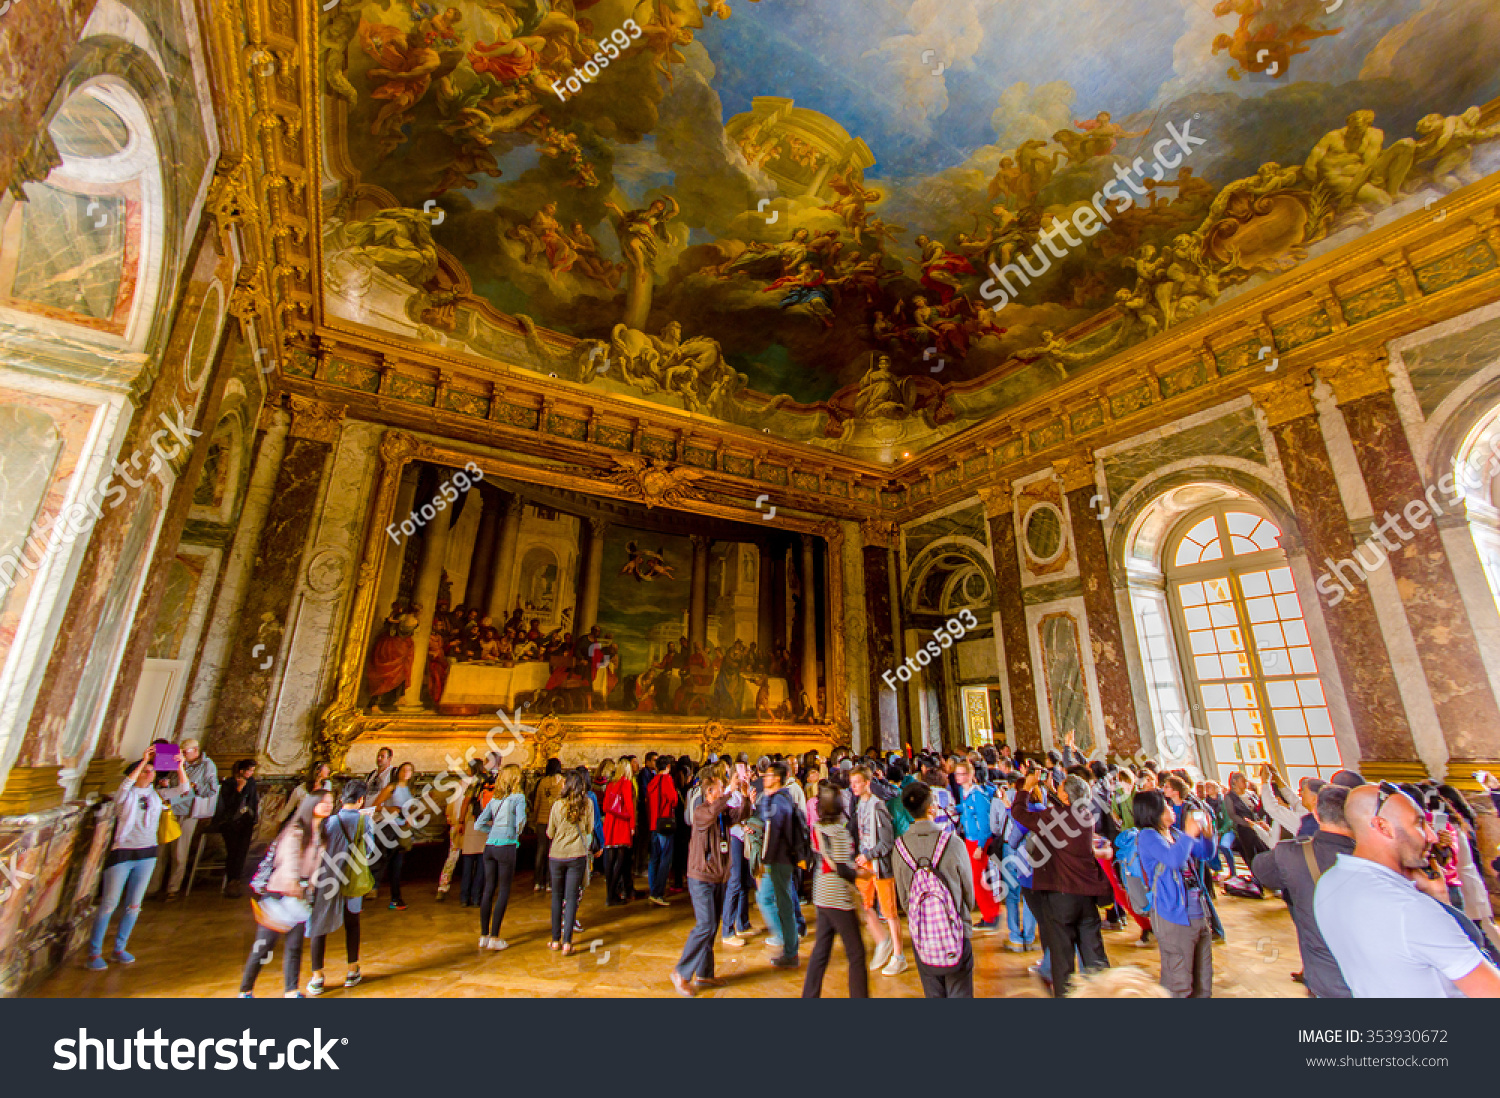 paris france june 1 2015 salon stock photo 353930672